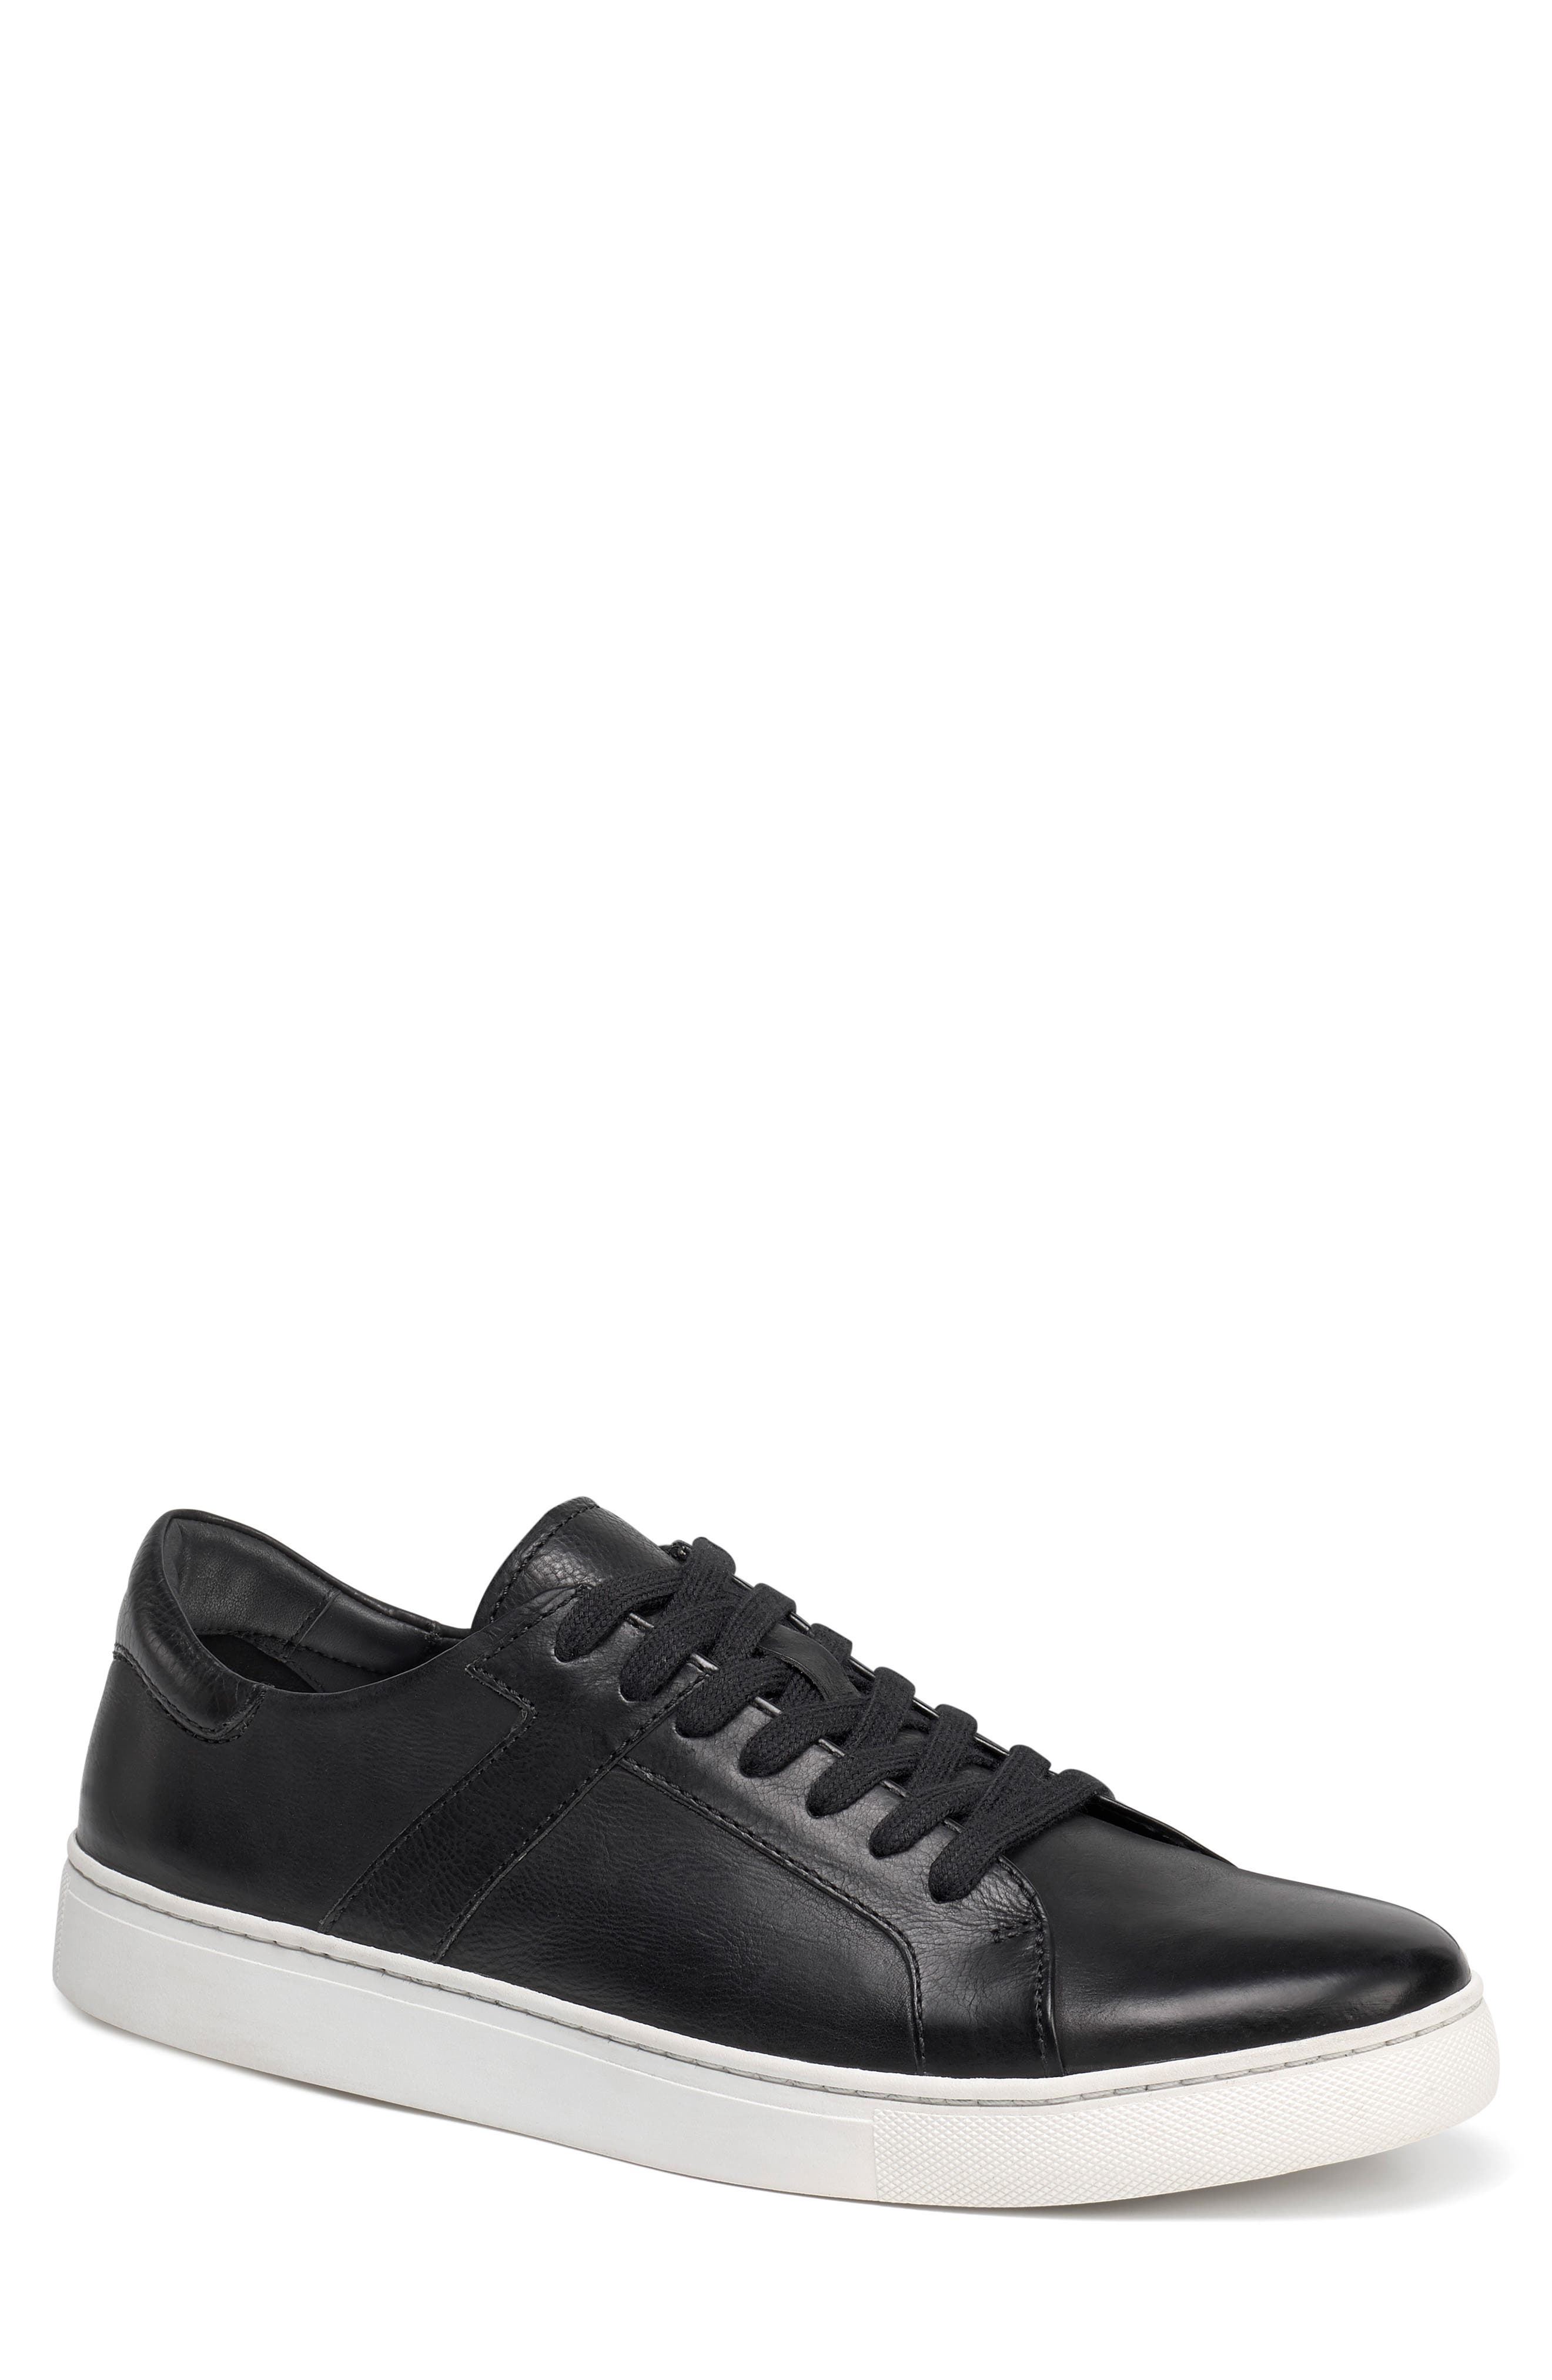 Aaron Sneaker,                             Main thumbnail 1, color,                             BLACK LEATHER